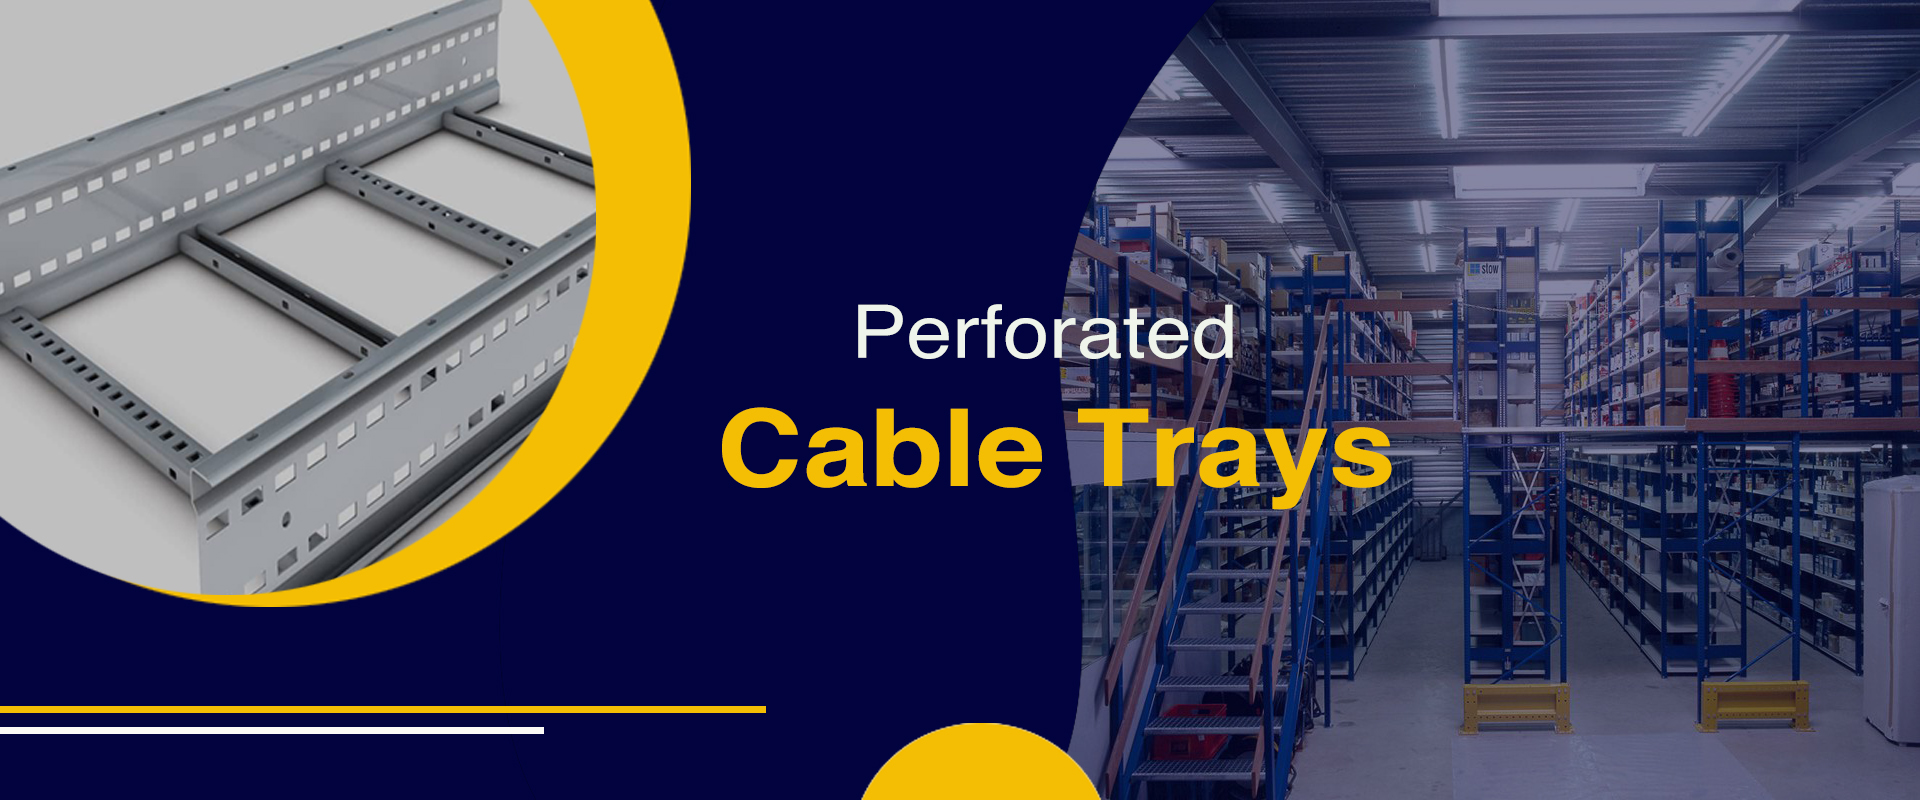 Perforated Cable Trays – How and Why?